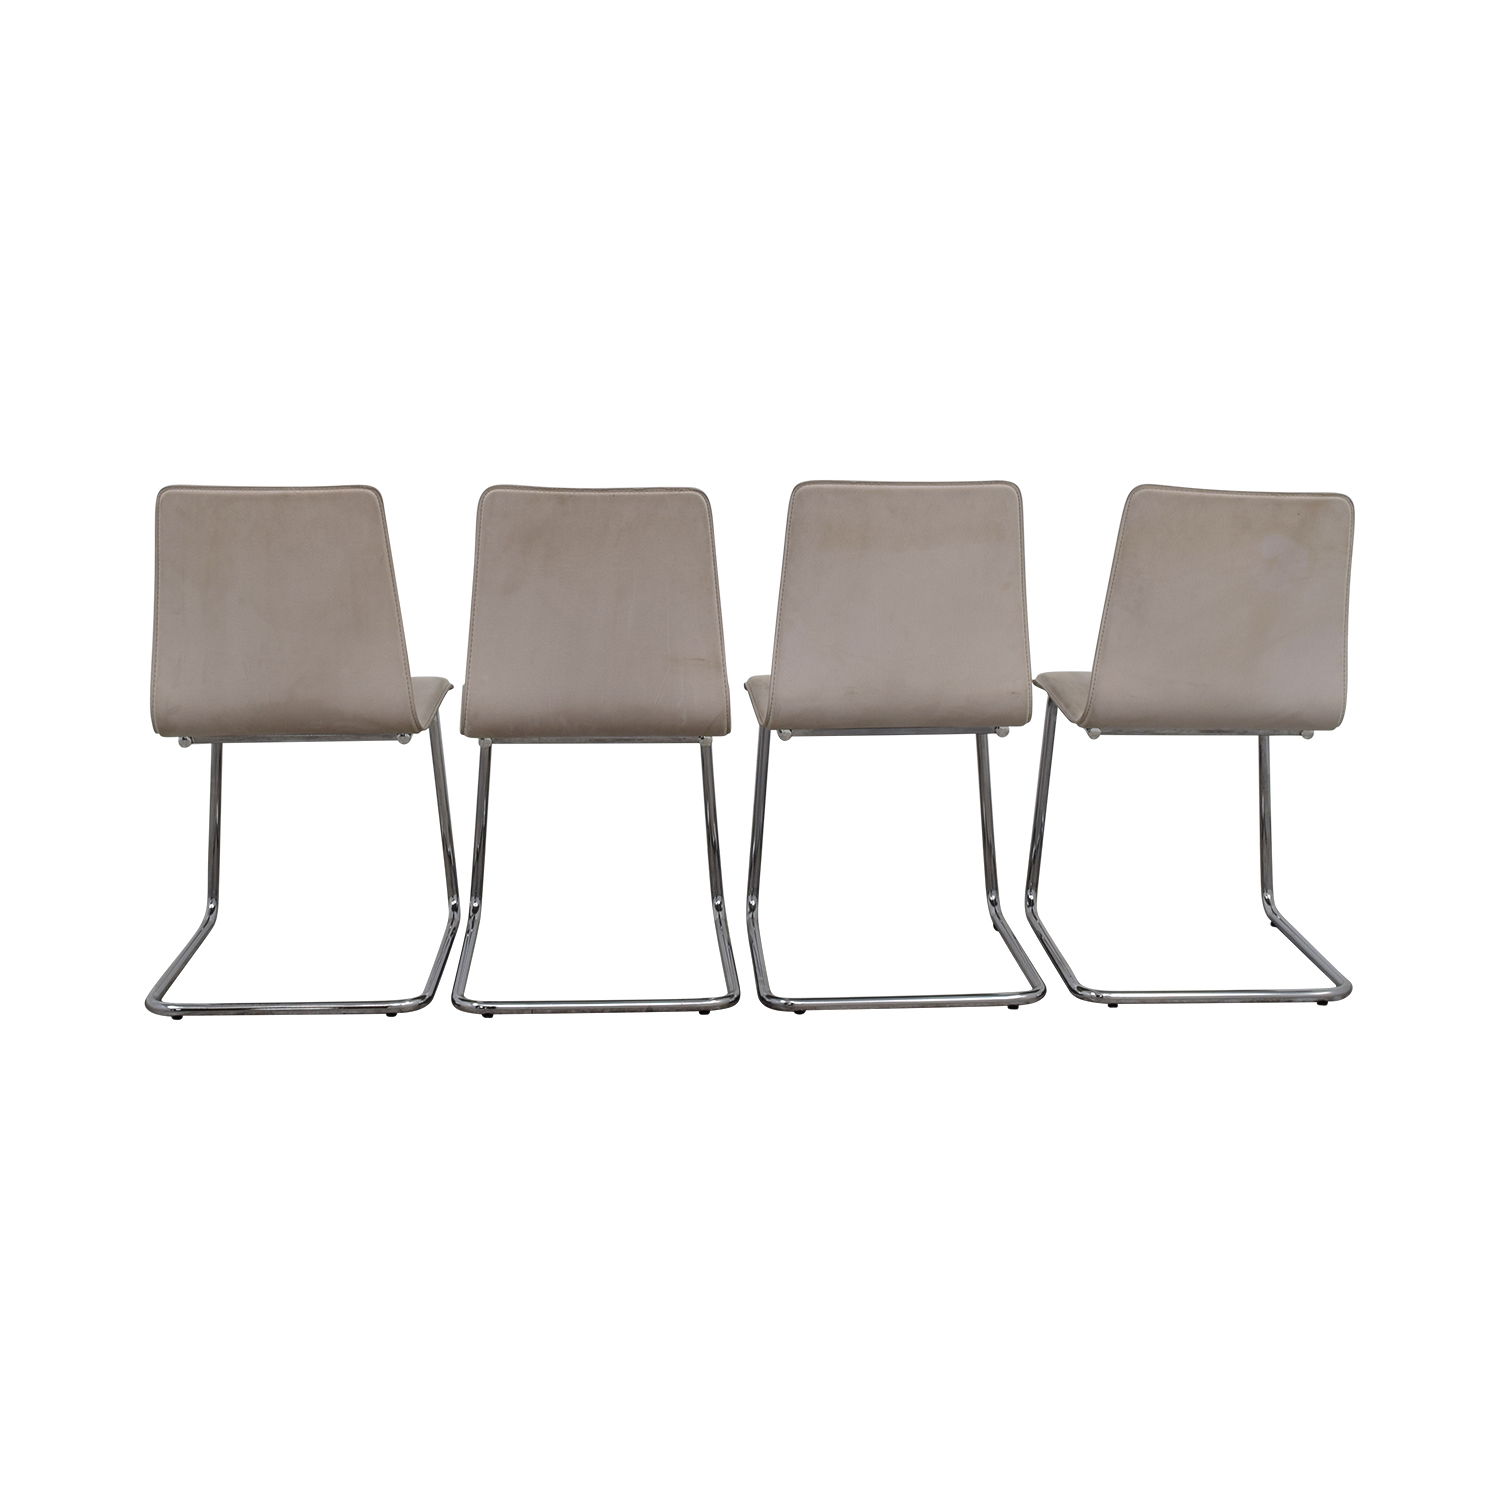 CB2 CB2 Pony White Tweed Chairs dimensions